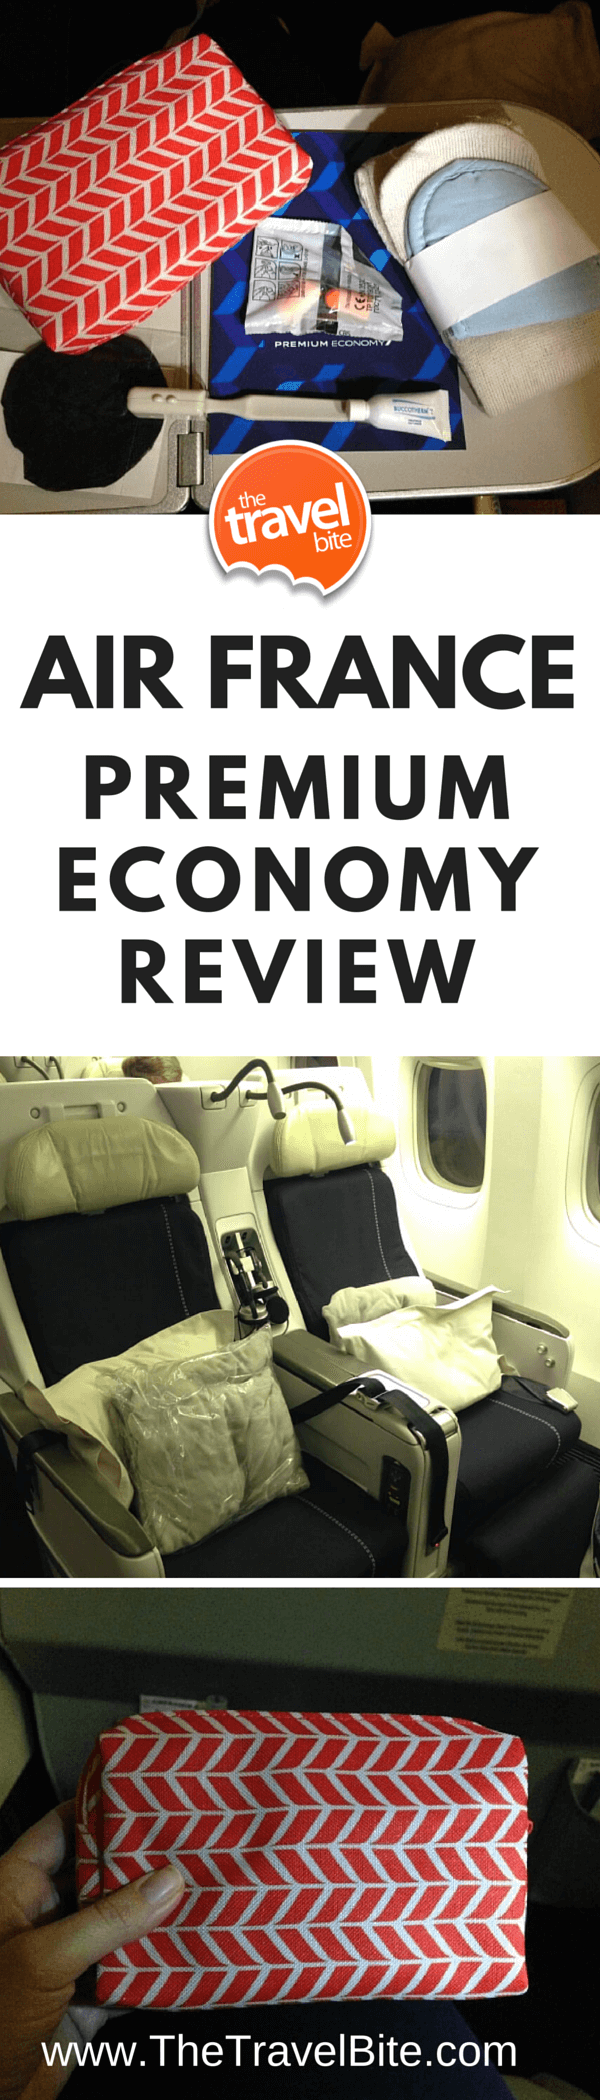 Air France Premium Economy Review-2